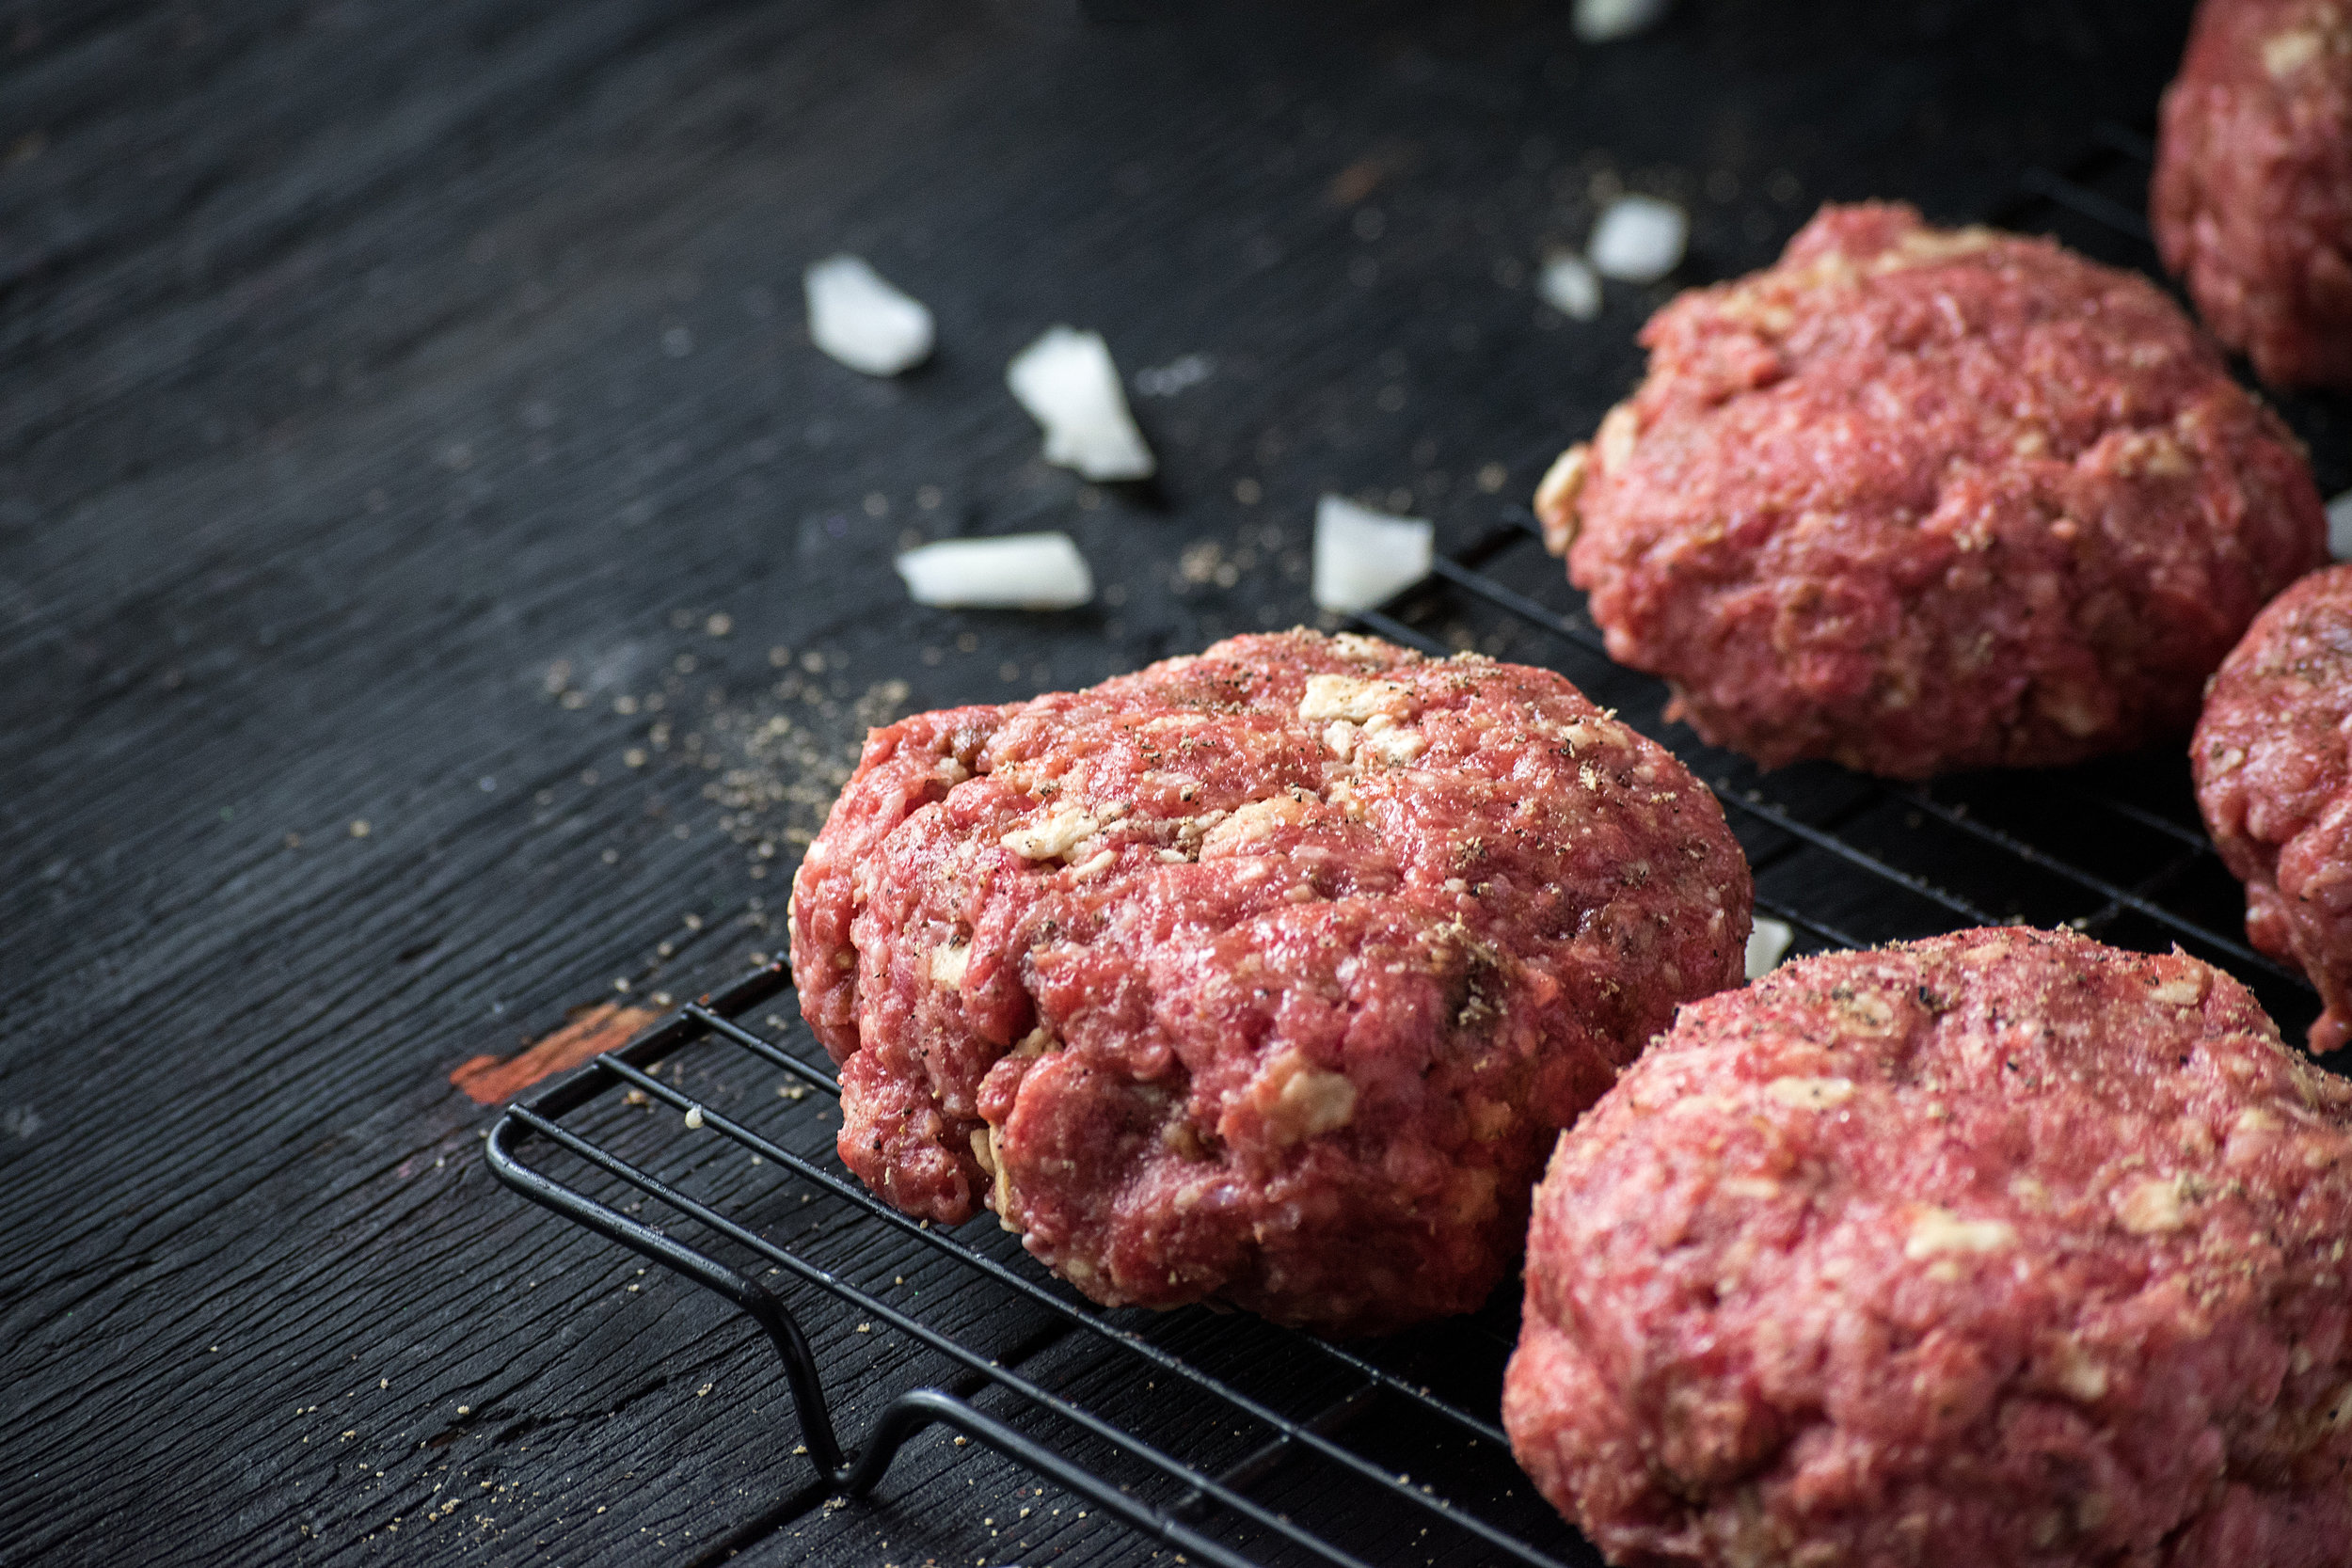 32_Quarter_GroundBeef_AdobeStock_189962933 copy.jpg